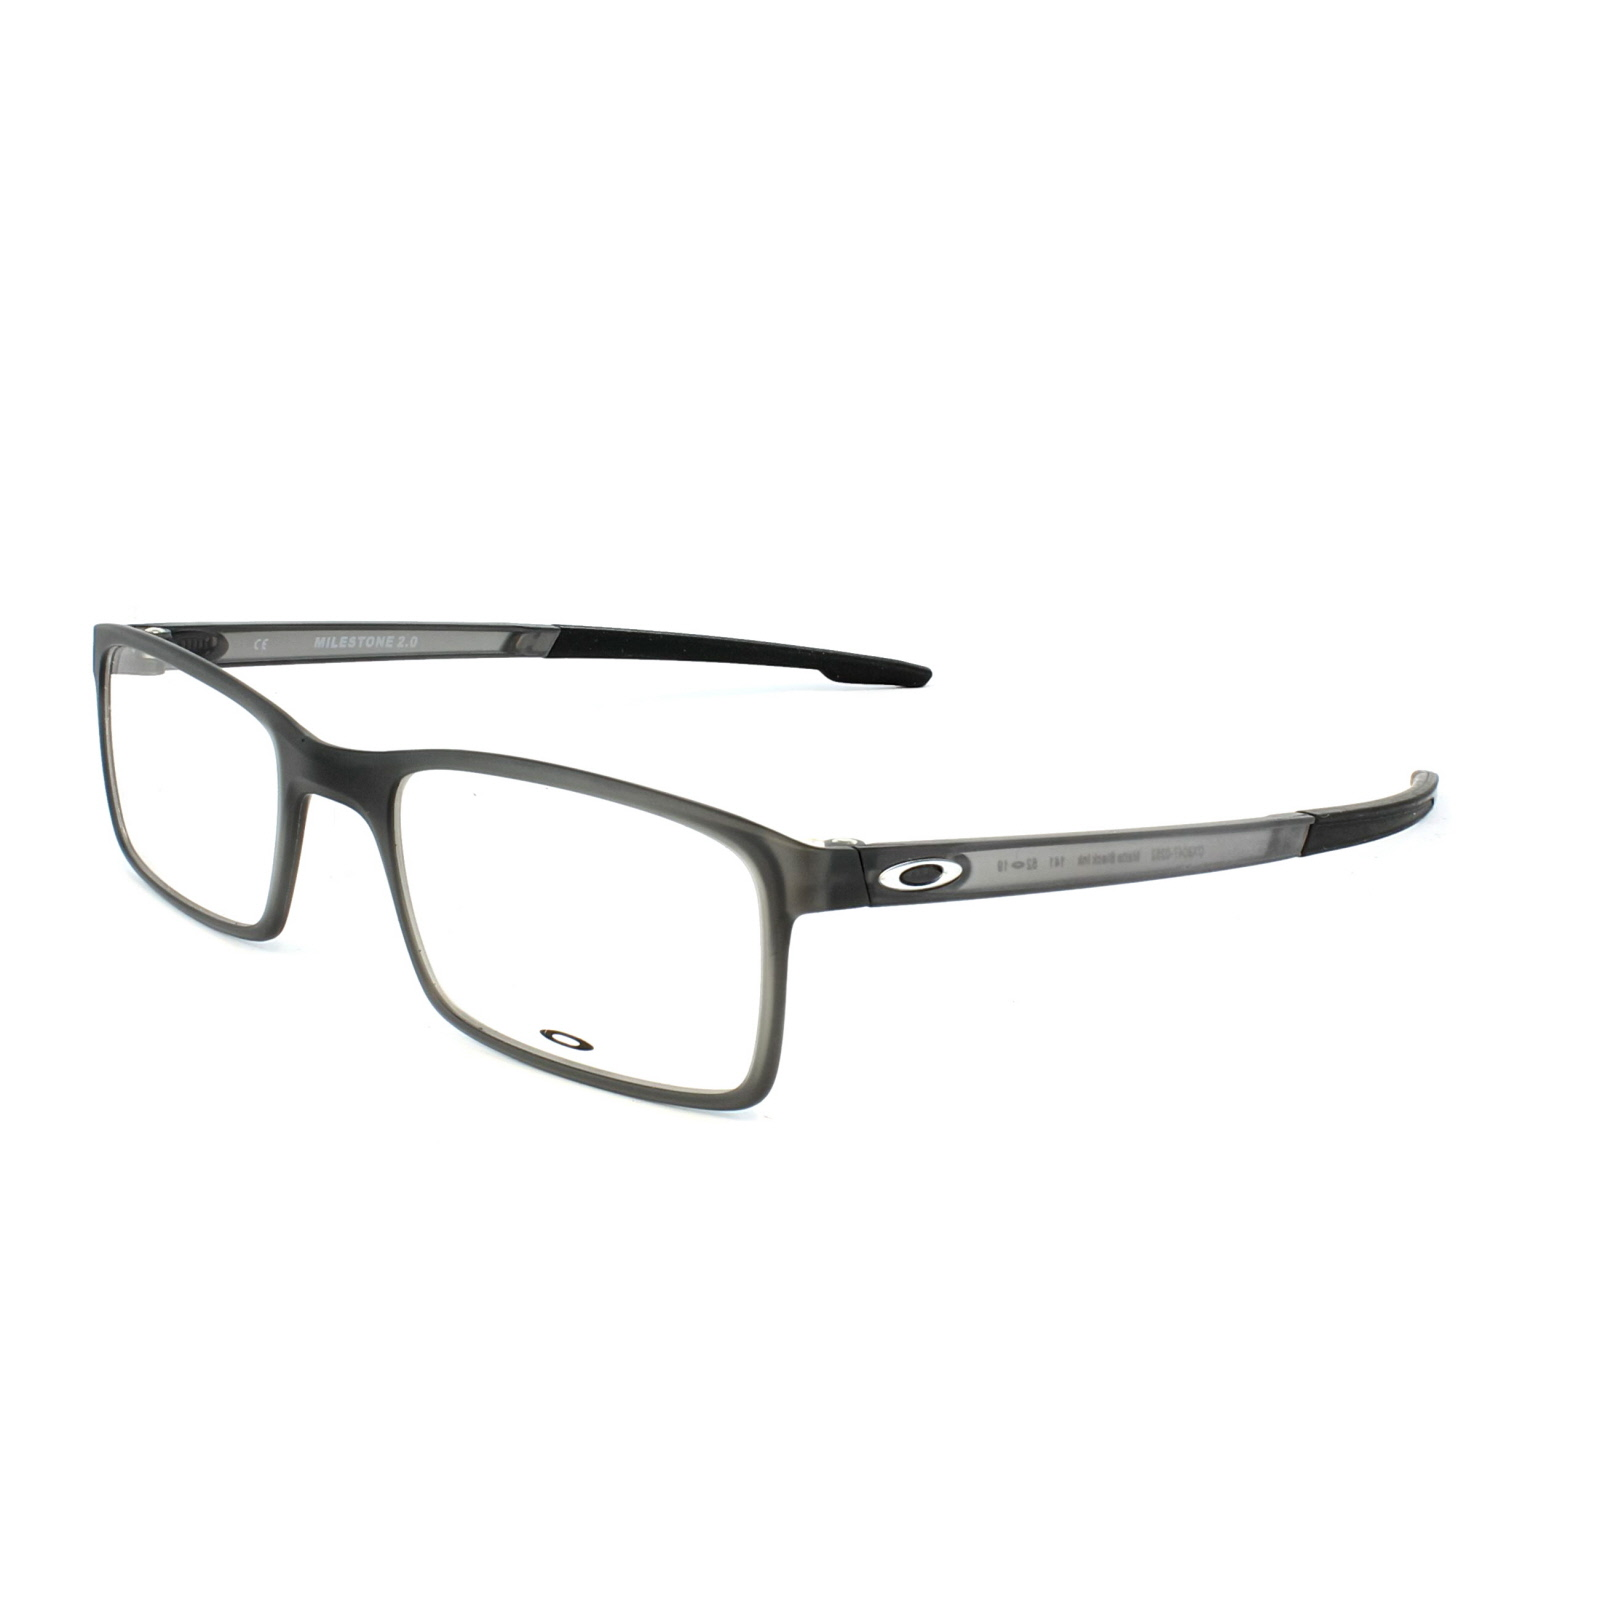 91956381347 Sentinel Oakley Glasses Frames Milestone 2.0 OX8047-02 Matt Black Ink